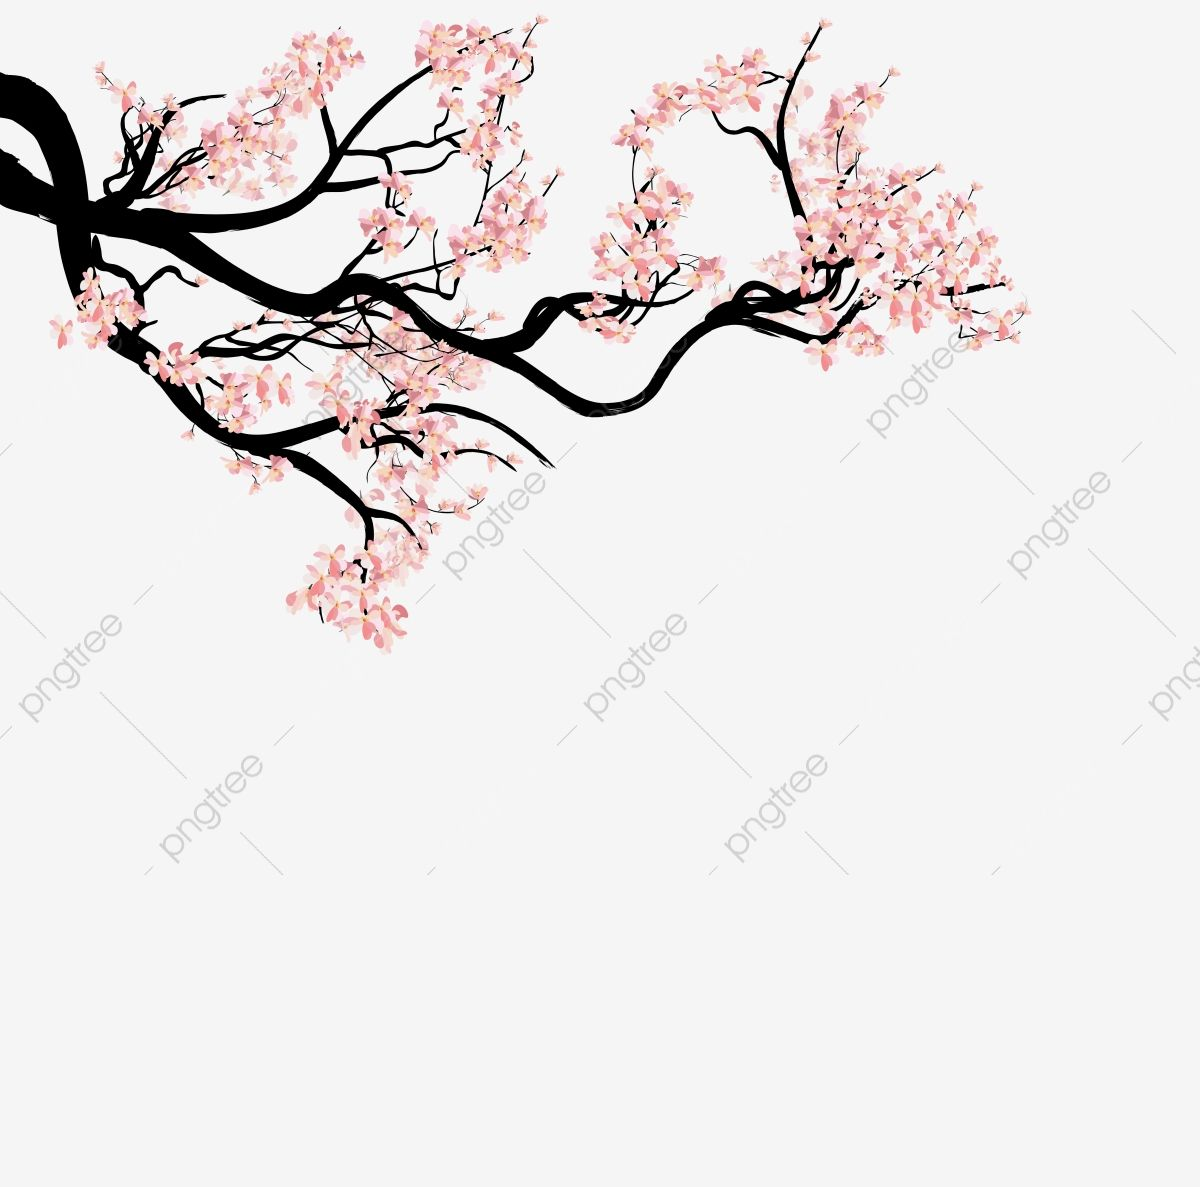 Watercolor Sakura Background With Blossom Cherry Tree Branches Hand Drawn Japanese Flowers Background Sakura Blossom Hand Drawn Png And Vector With Transpar Cherry Blossom Drawing Japanese Flowers Flower Backgrounds